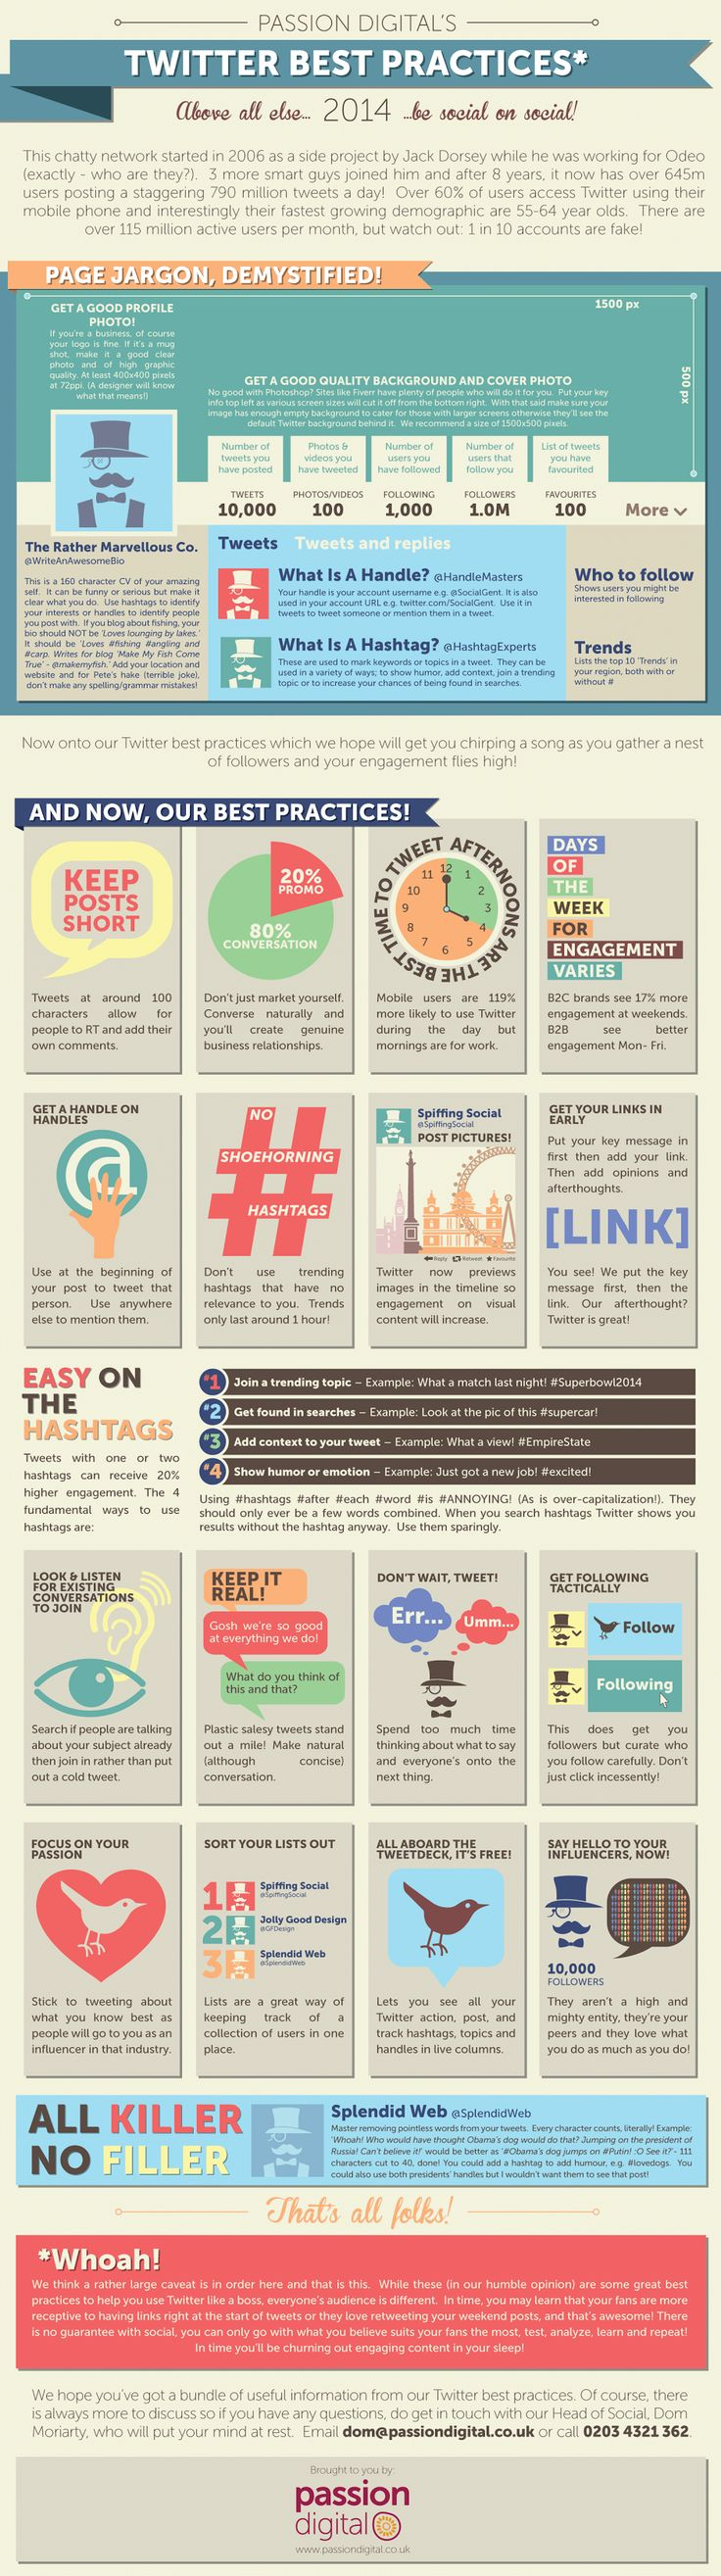 Twitter Best Practices - 23 Practices For 2014 #infographic